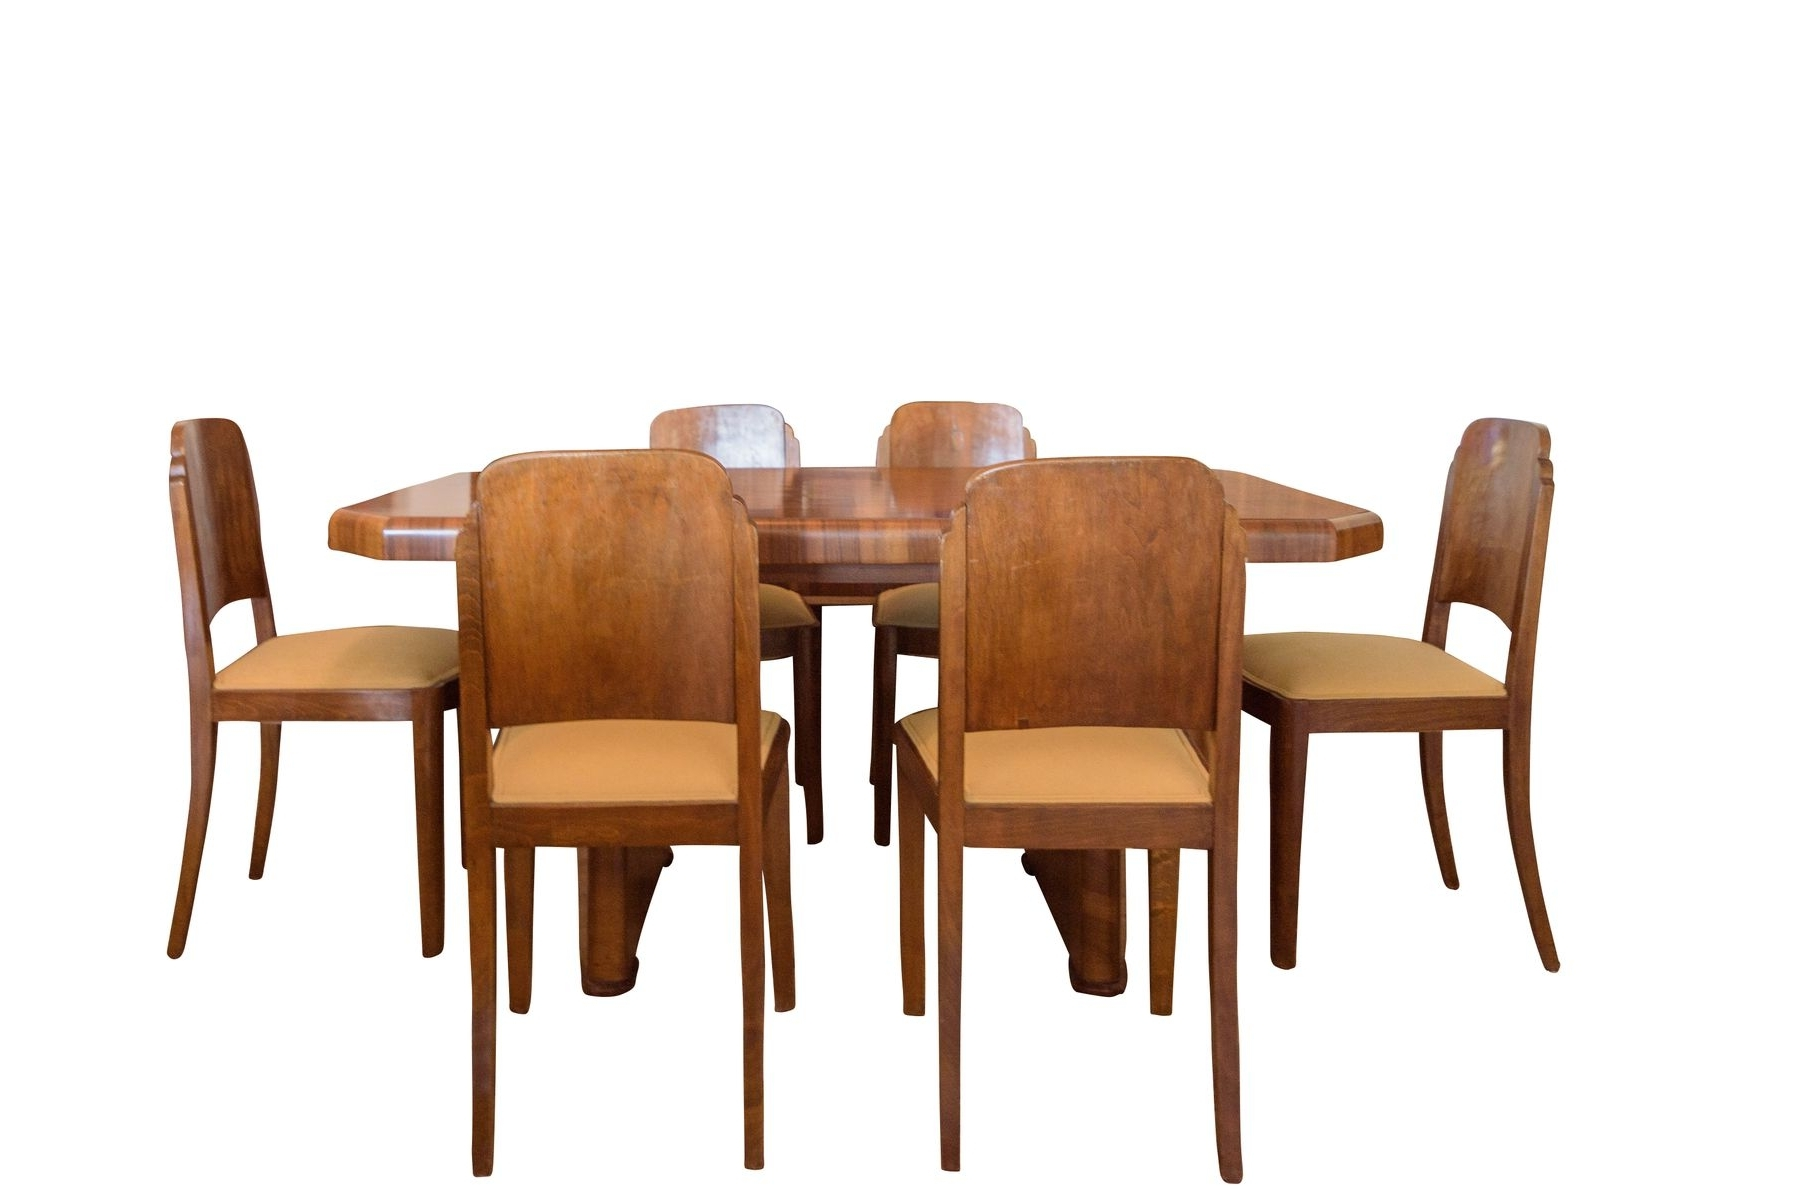 Latest Art Deco Walnut Dining Table & 6 Chairs, 1920S For Sale At Pamono Intended For Walnut Dining Table And 6 Chairs (View 21 of 25)